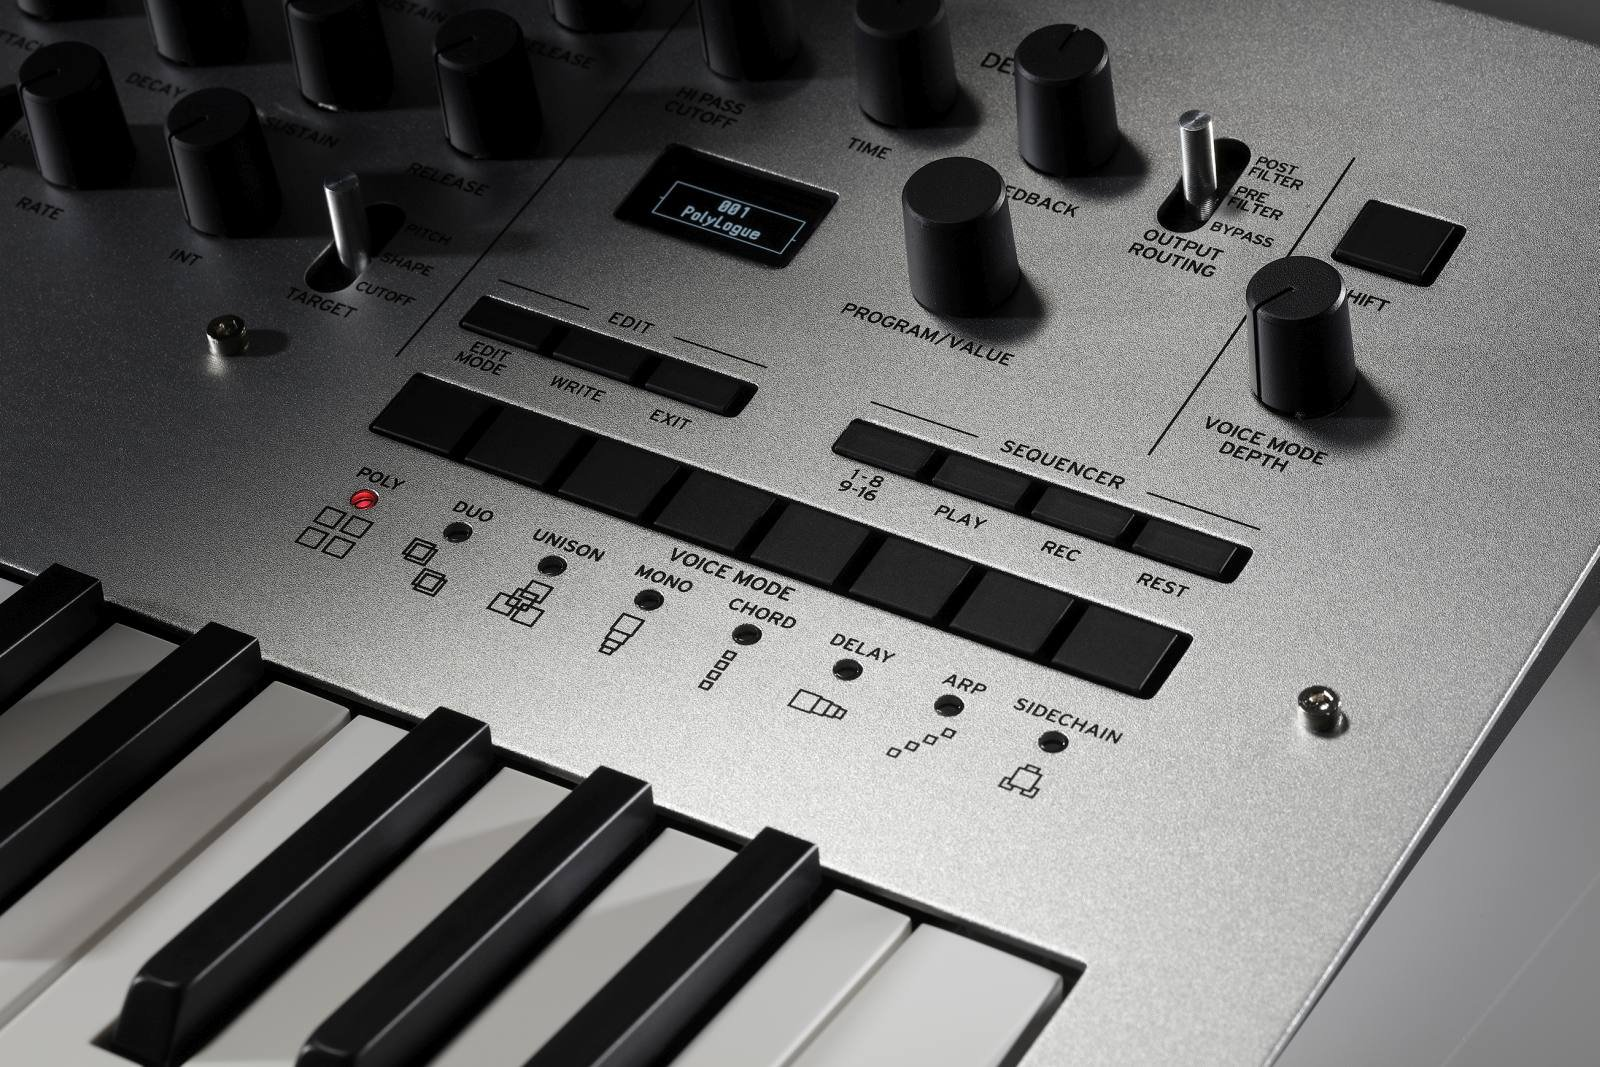 Korg Minilogue 4-Voice Polyphonic Analog Synth with Presets by Korg (Image #5)